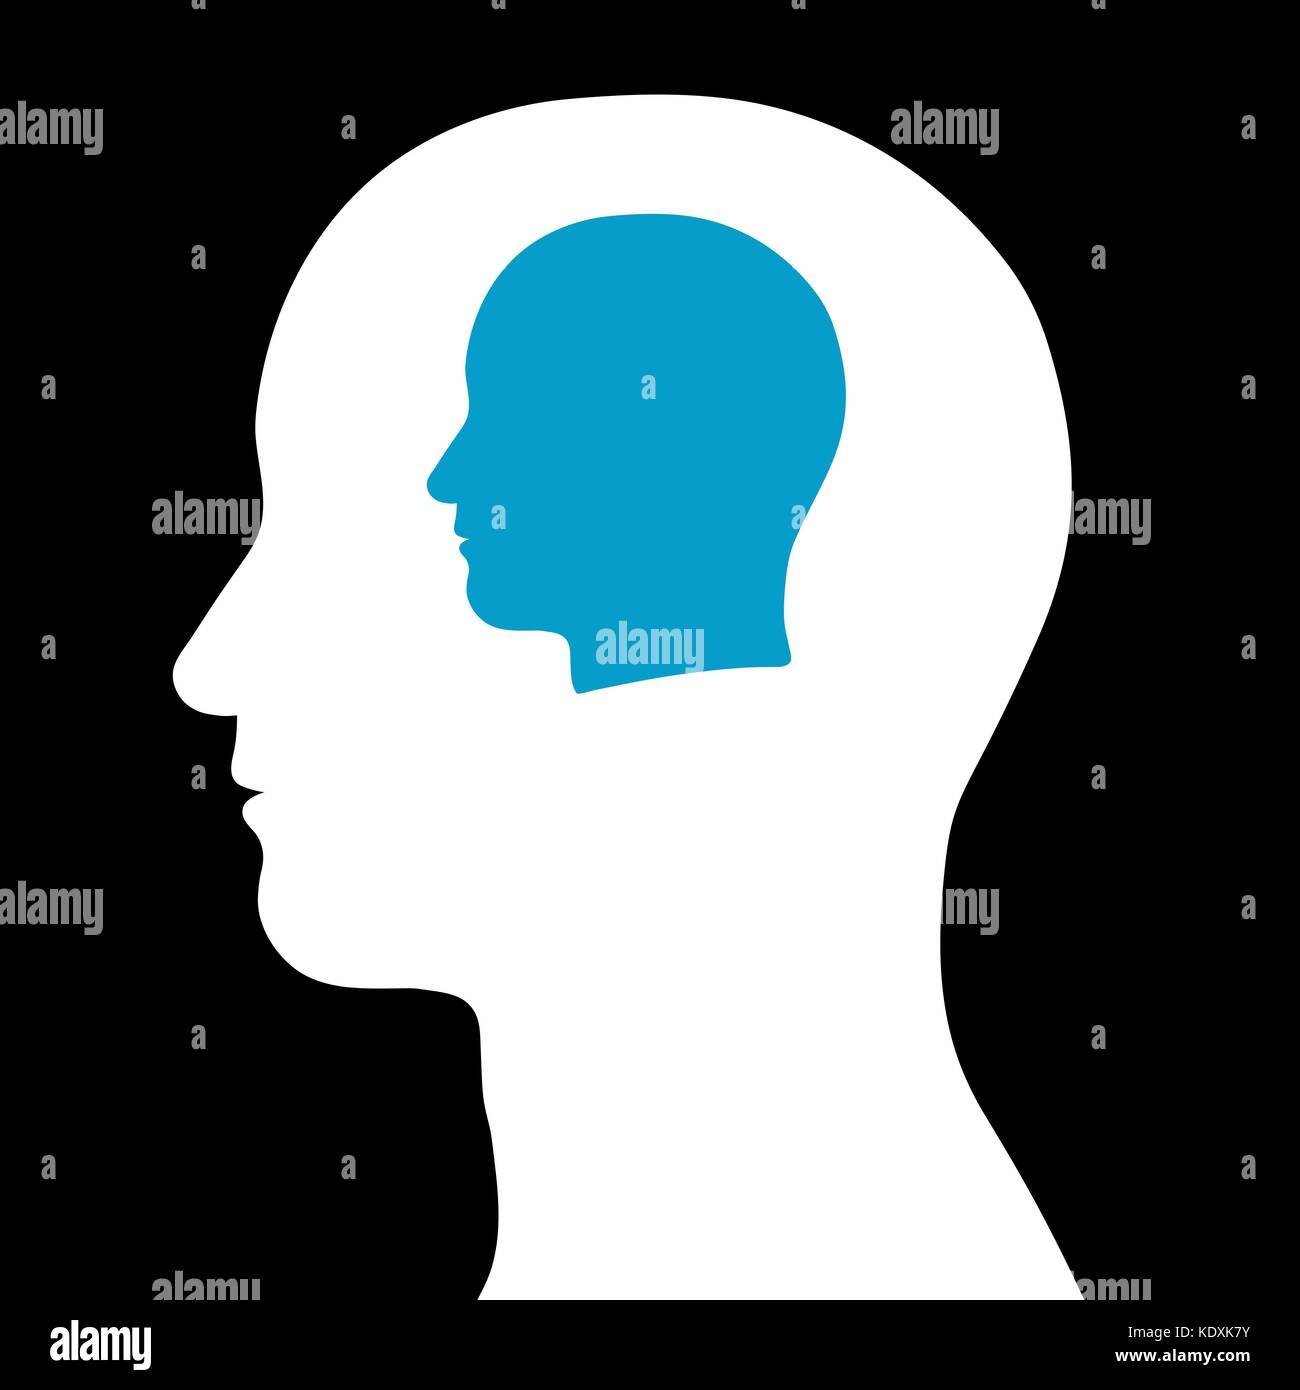 Head inside head, depicting contemplation about self, introspection - vector illustration - Stock Vector